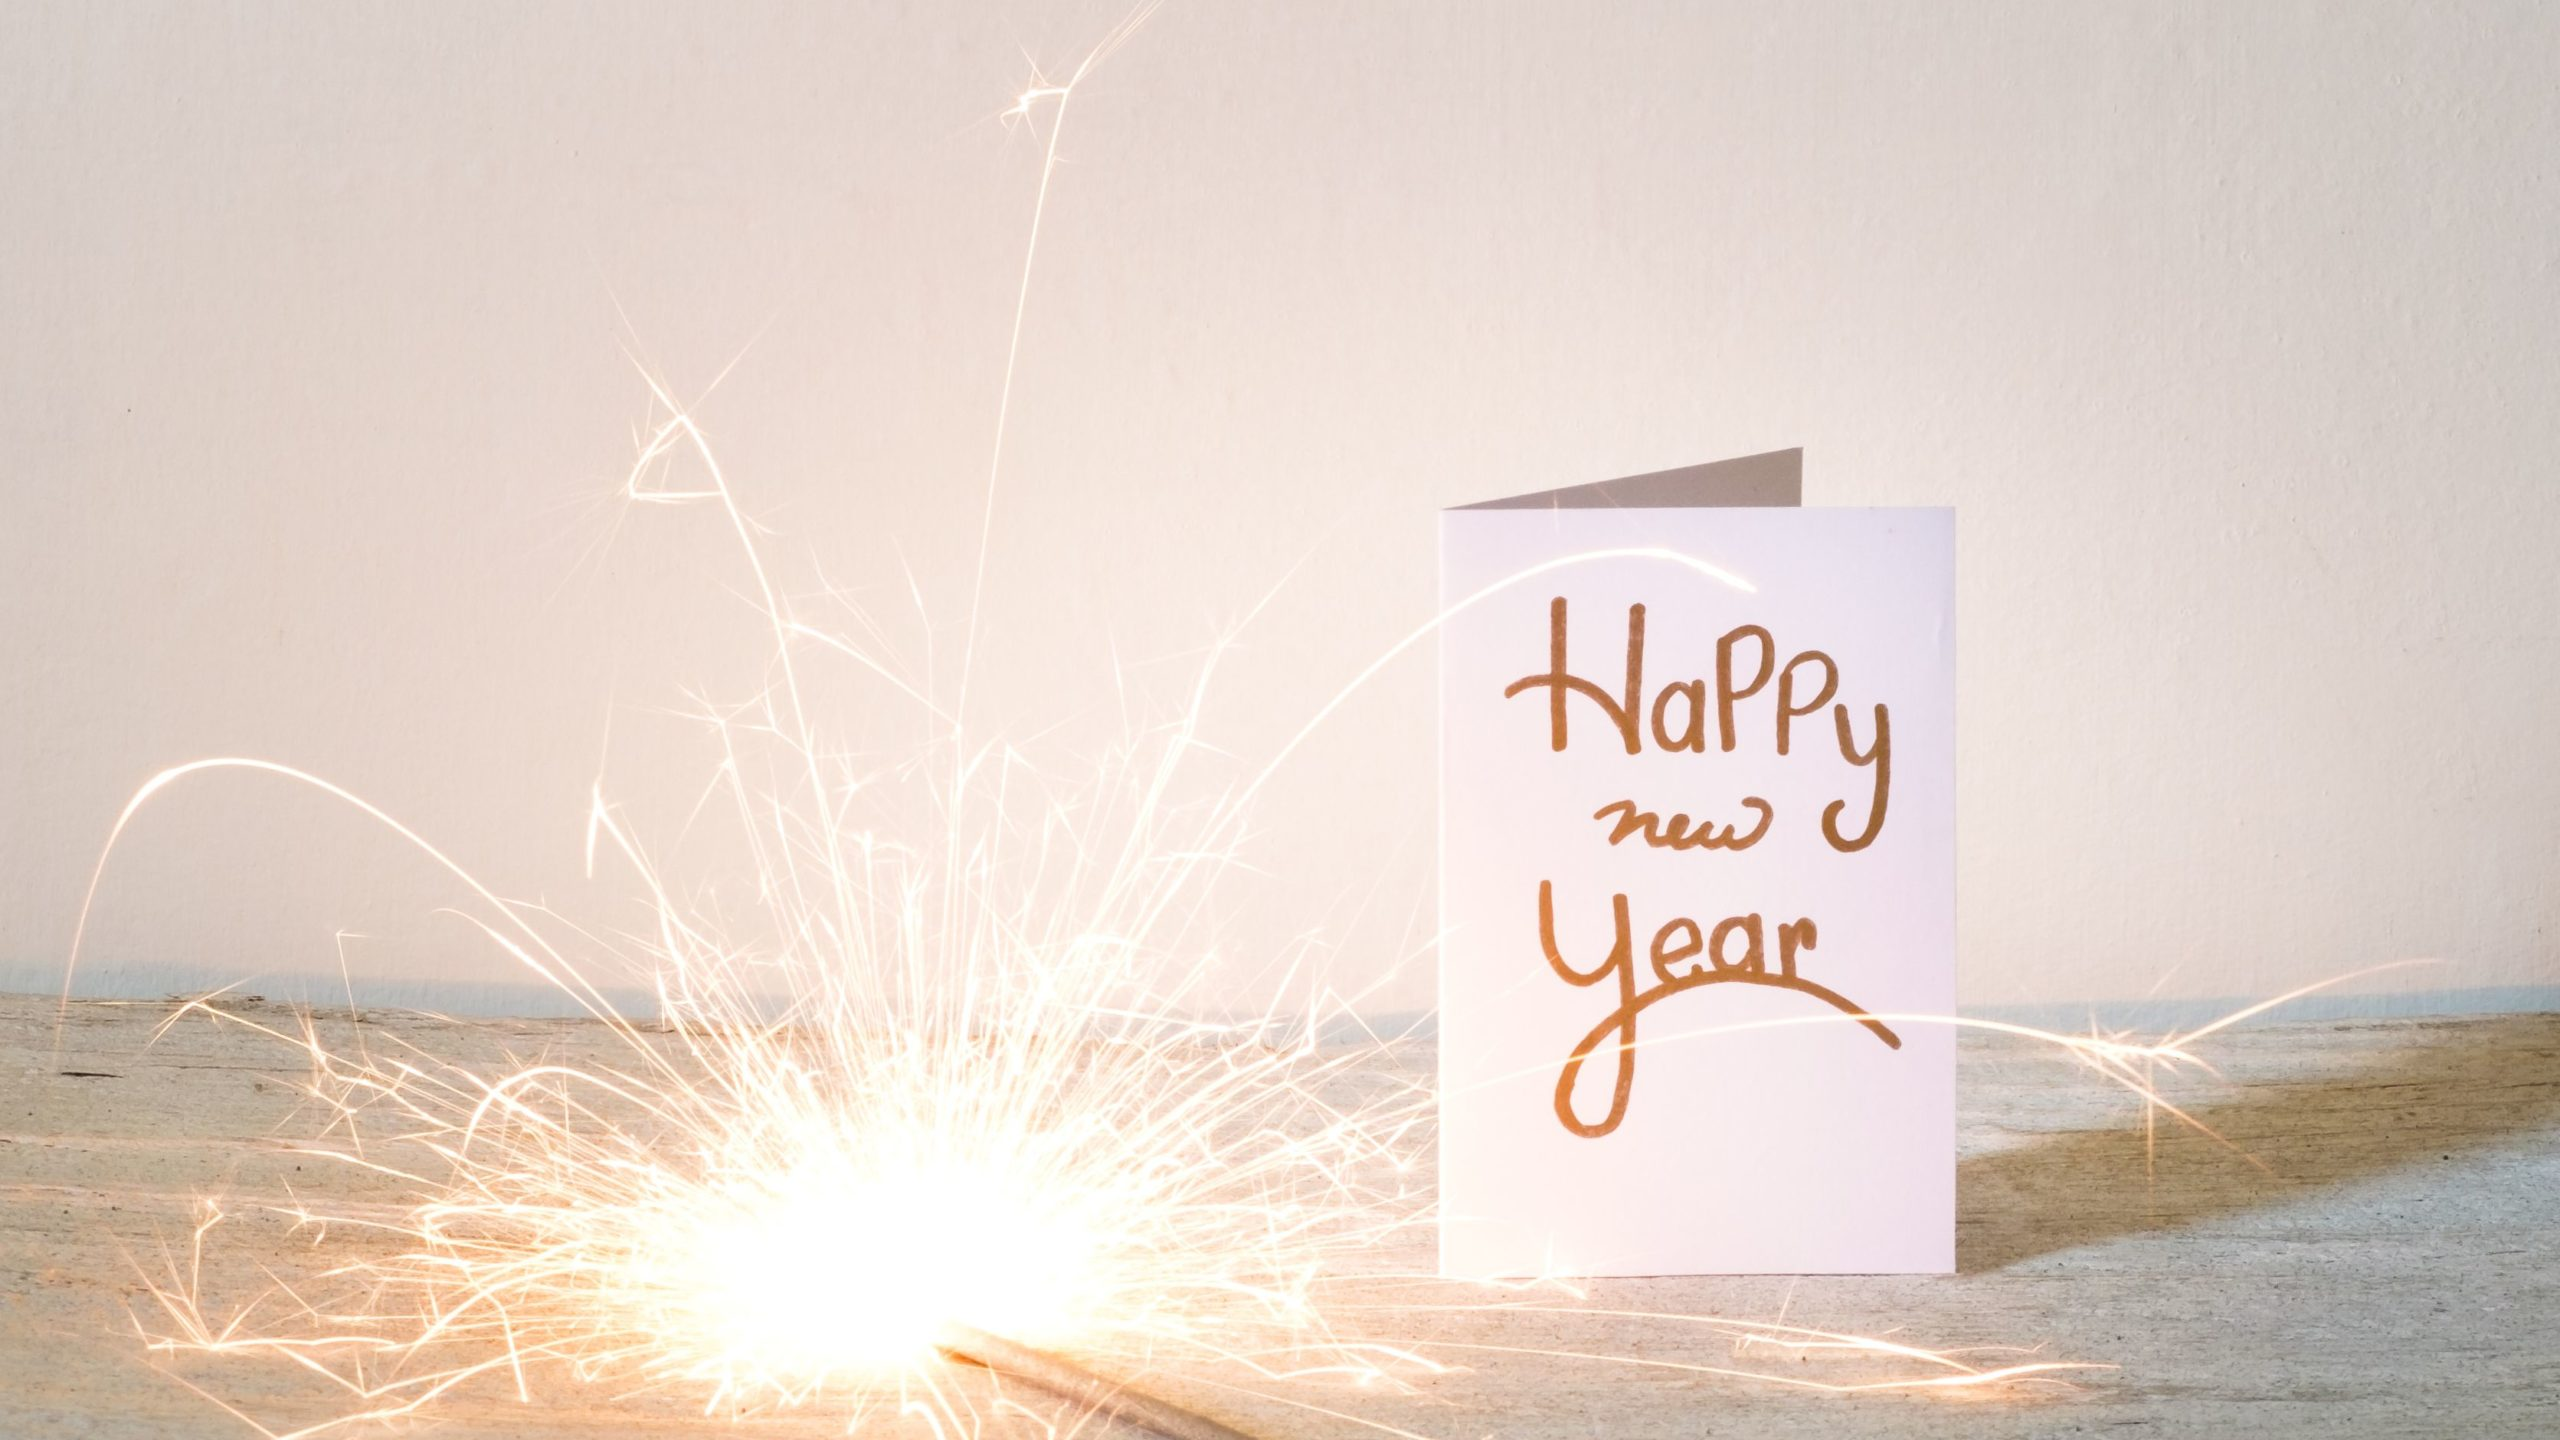 new-year-card-with-lit-sparkler-on-table-against-wall-688969401-5bd668bc46e0fb0026718605